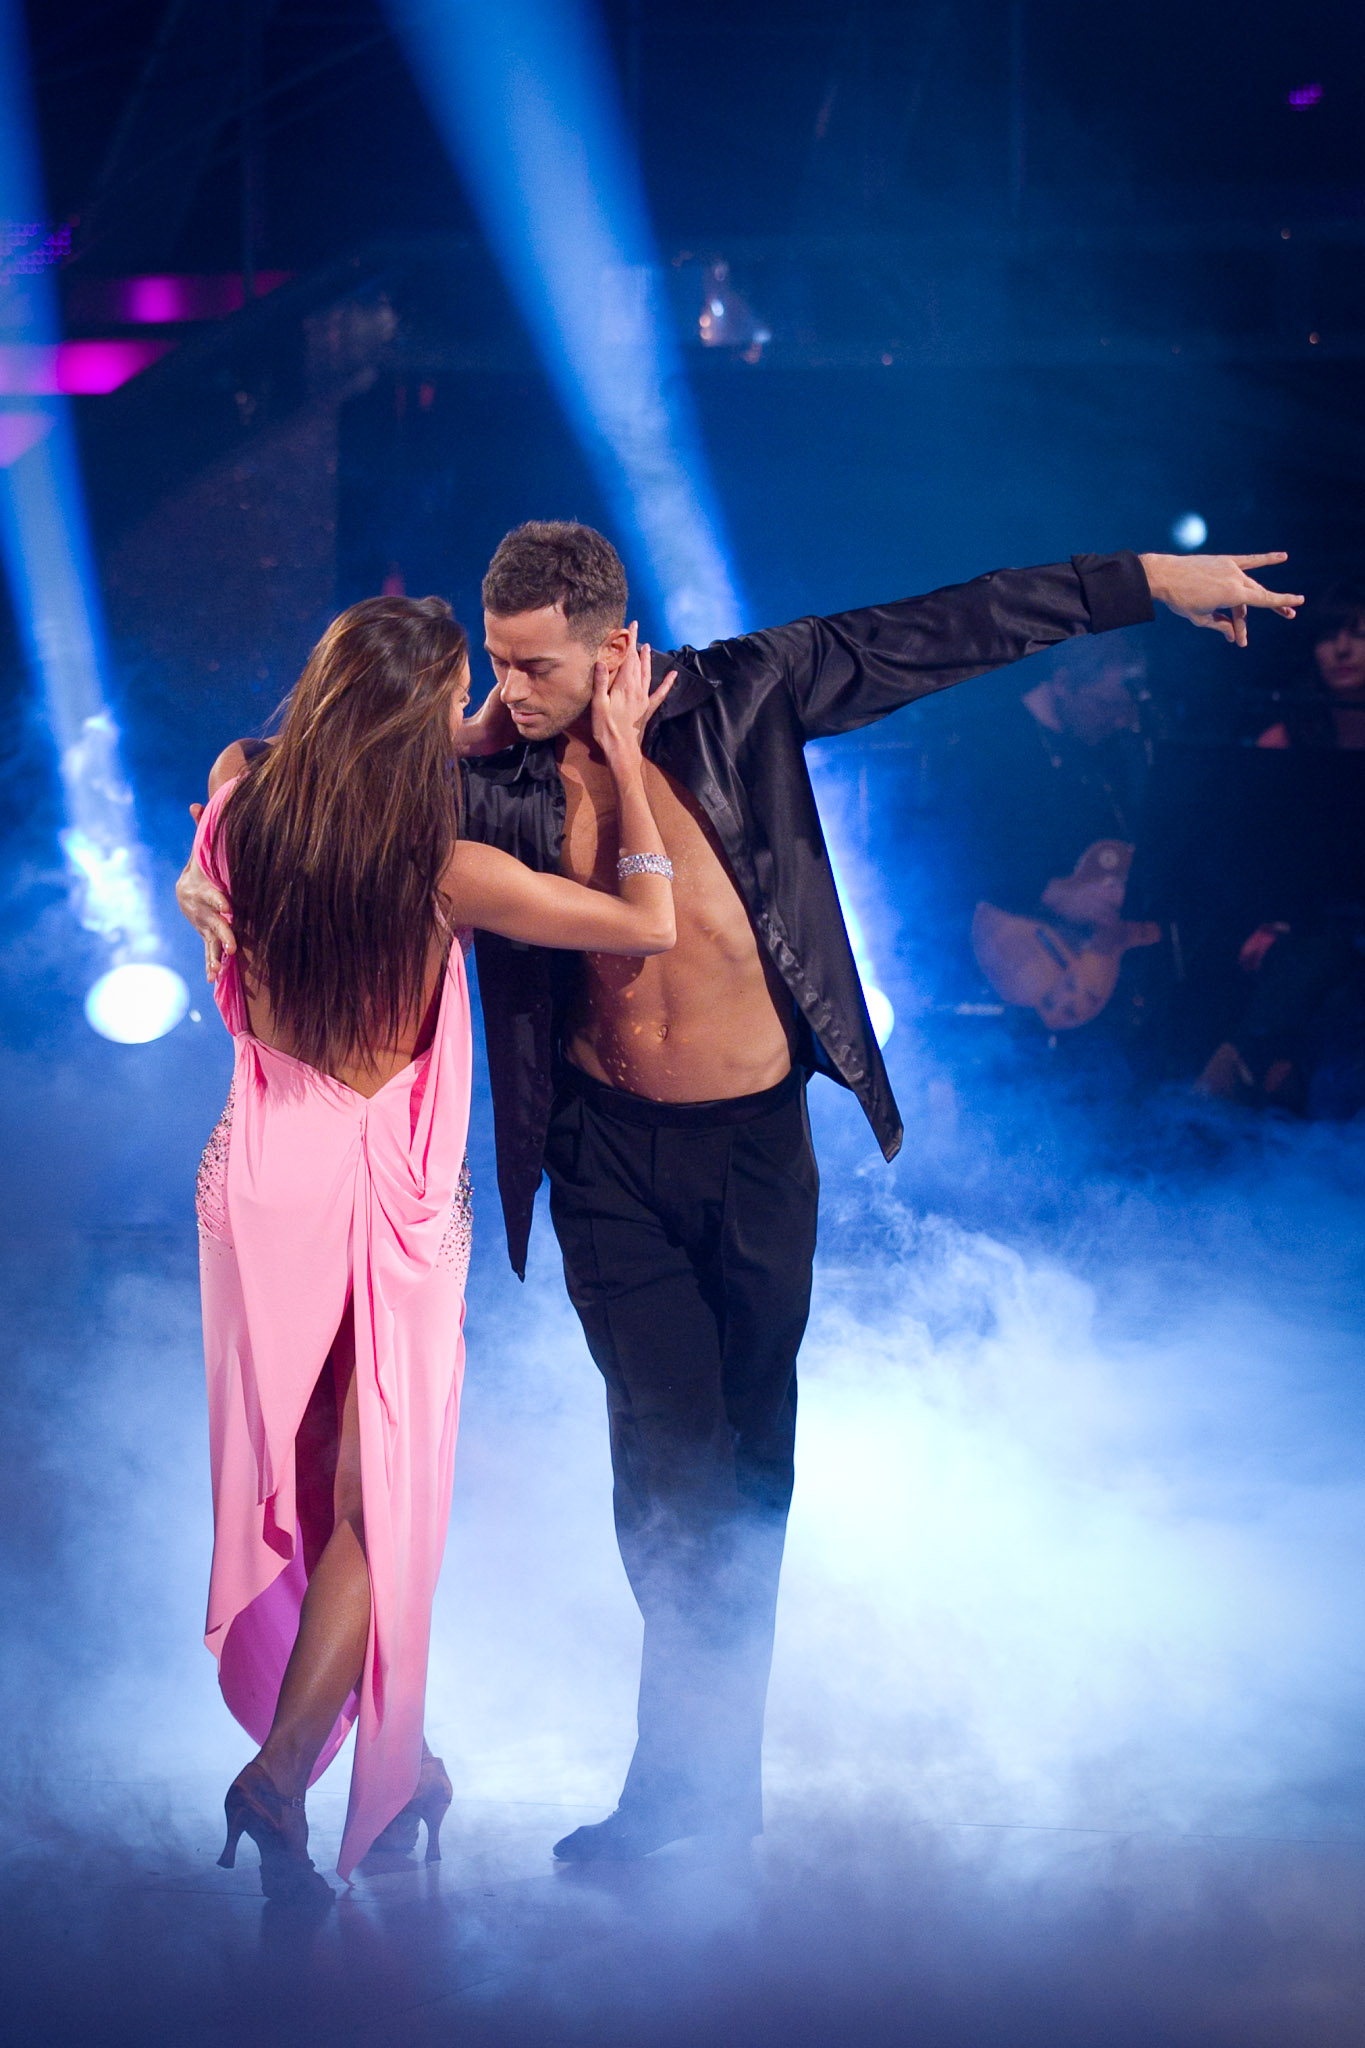 Artem Chigvintsev is a new professional dancer on Strictly